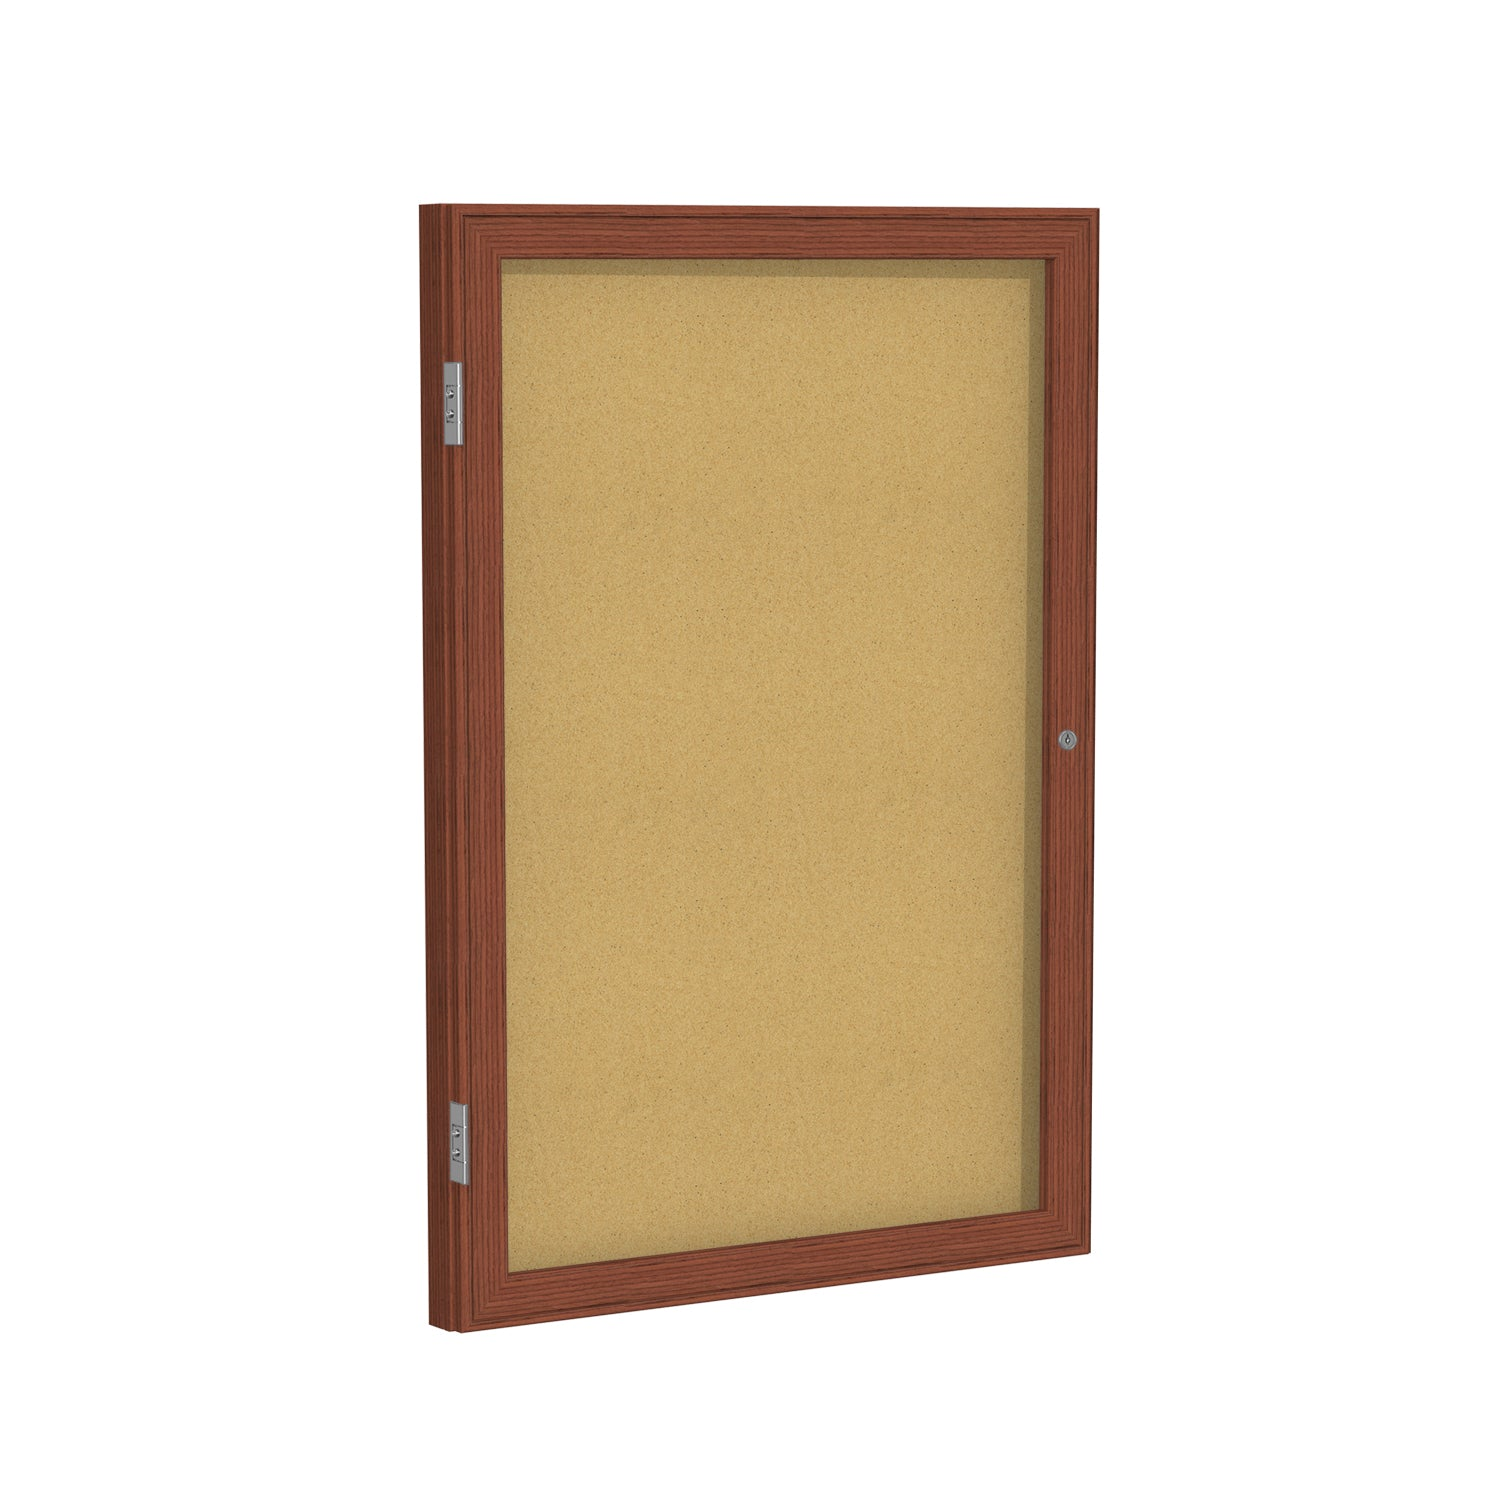 Ghent Wood Frame Cherry Finish Enclosed Bulletin Board-Natural Cork